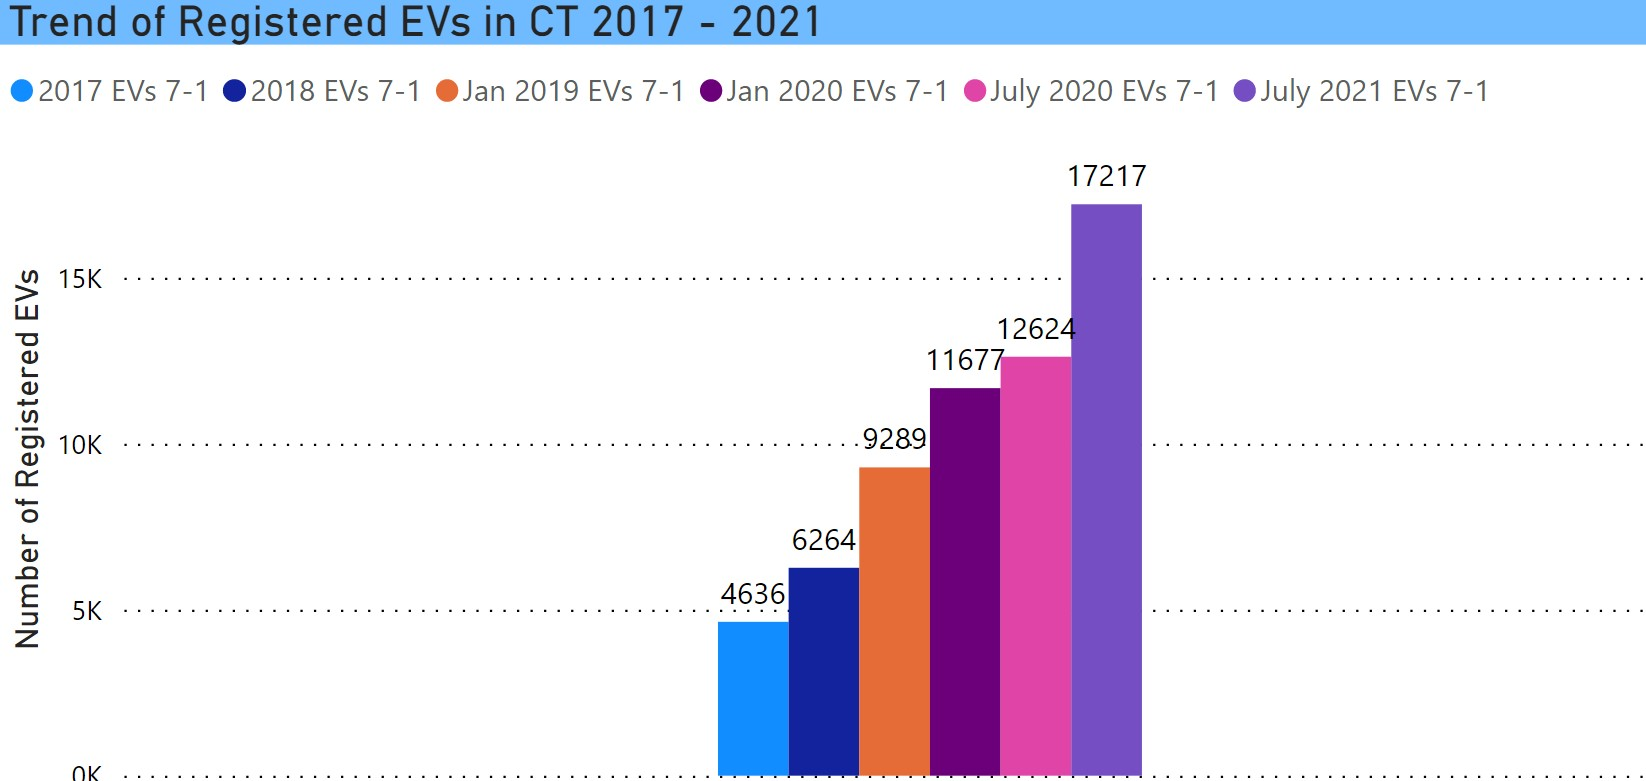 Trend of registered EVs in CT